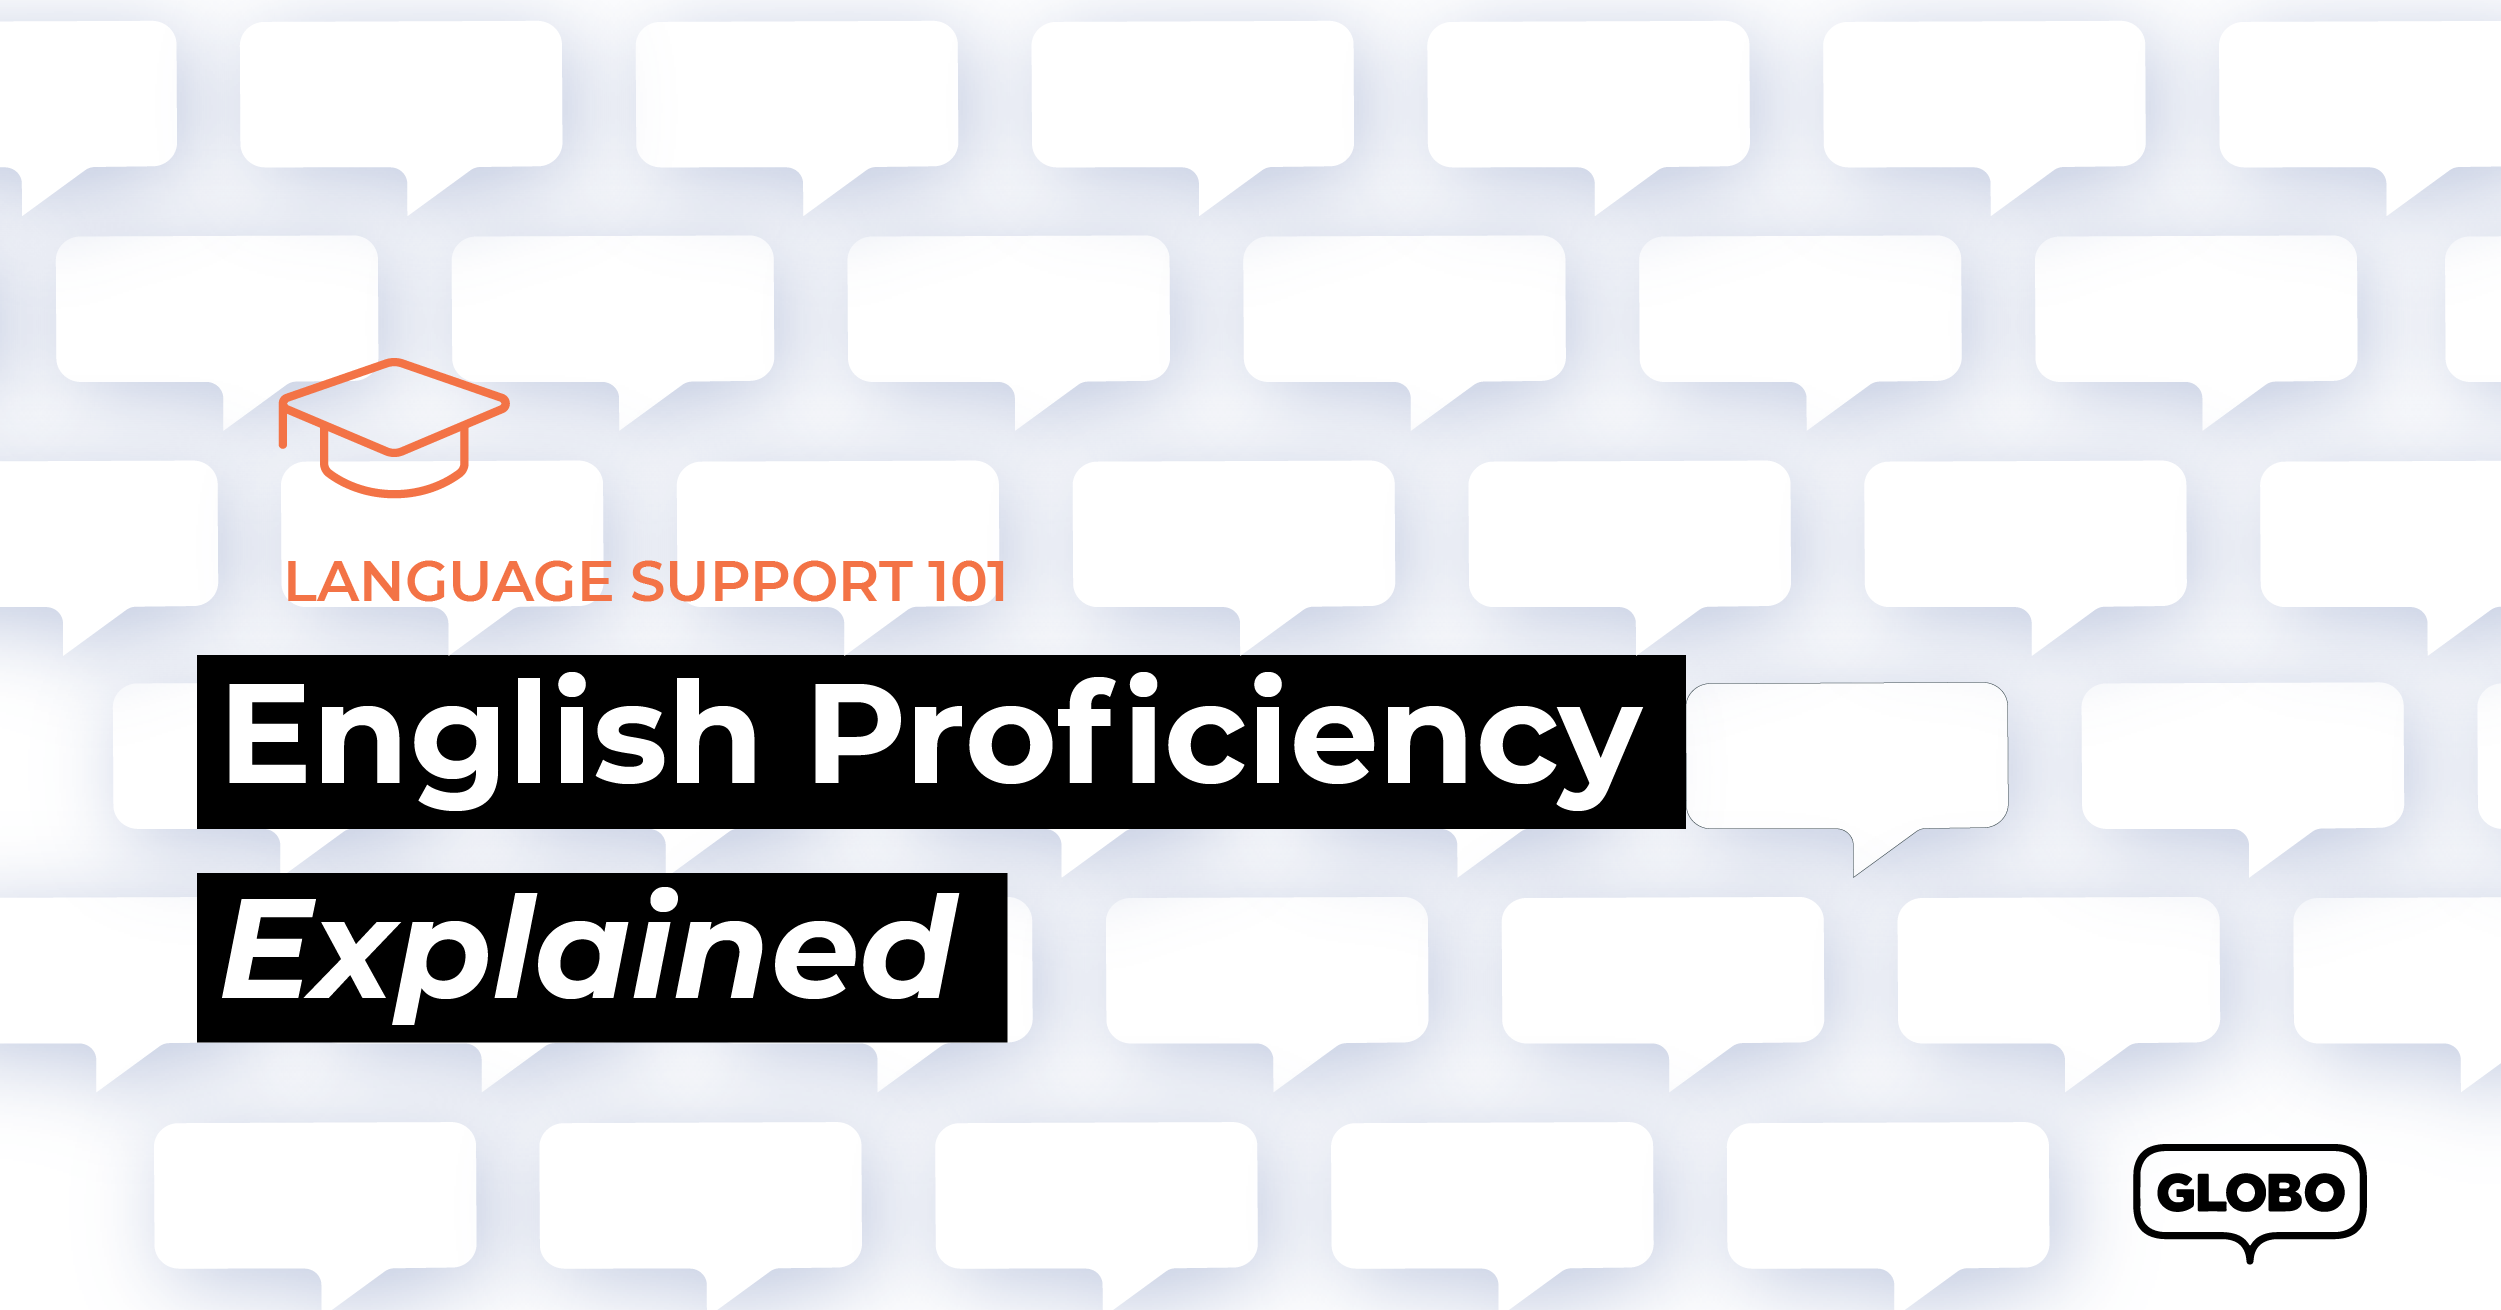 English Proficiency, Explained